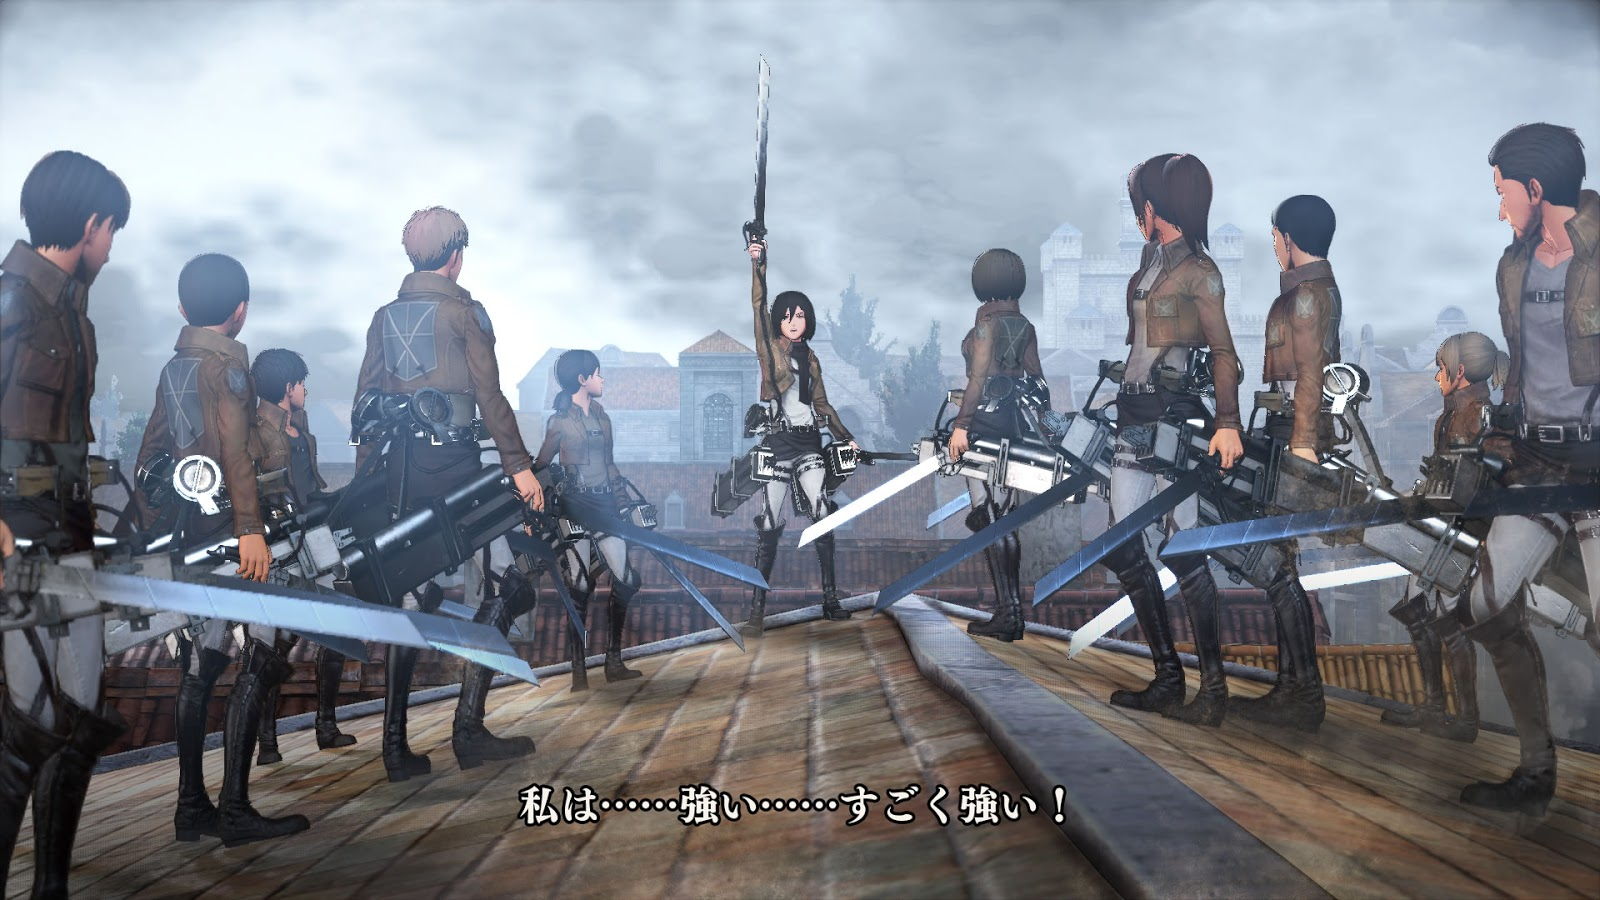 Review - Attack on Titan: Wings of Freedom - We Know Gamers